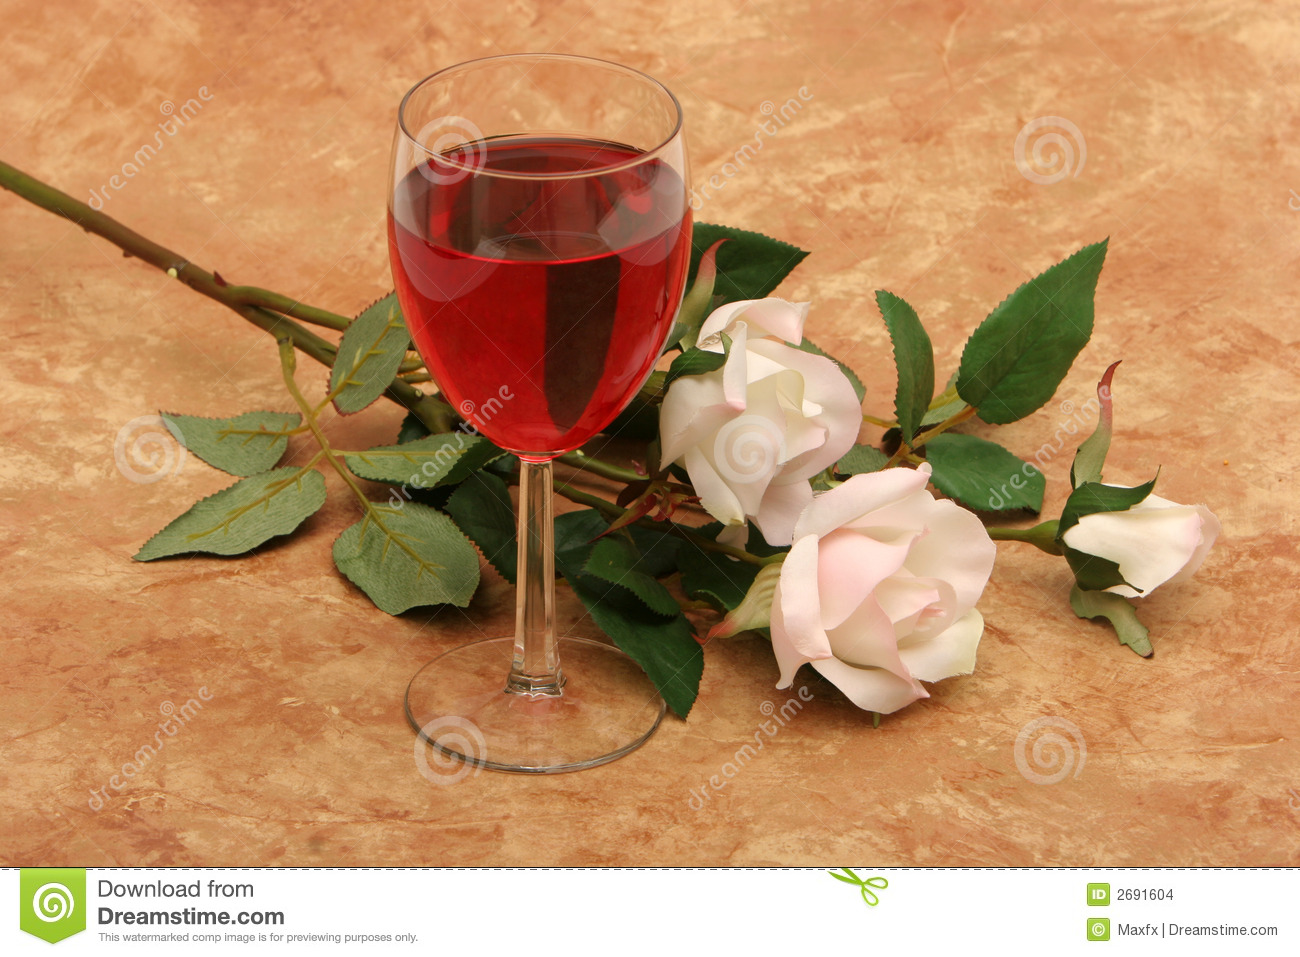 White and Red Rose Wine Glass